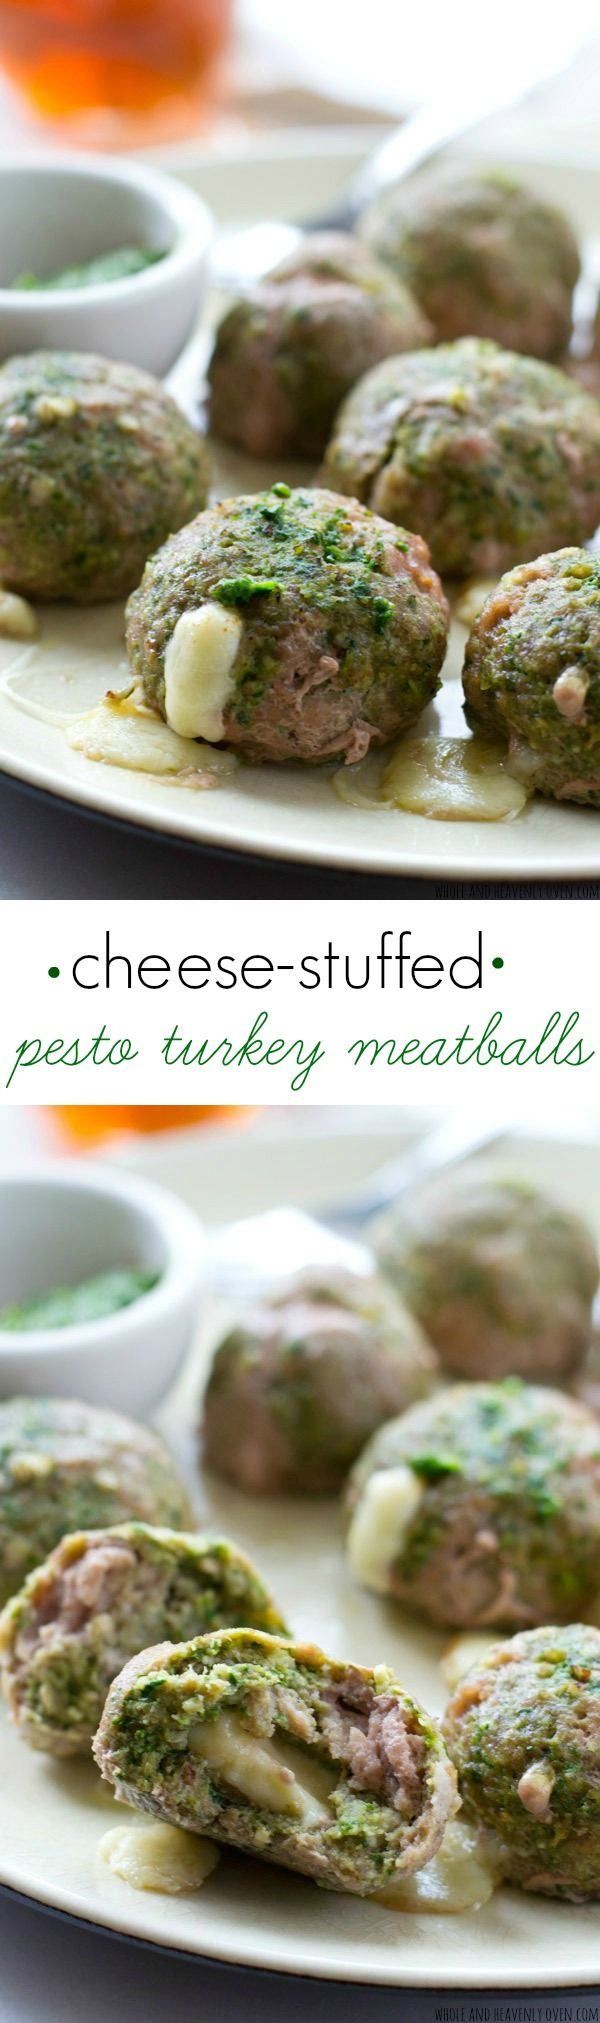 Exploding with gooey mozzarella cheese and super-moist from the pesto, these flavorful turkey meatballs are a weeknight dinner dream!